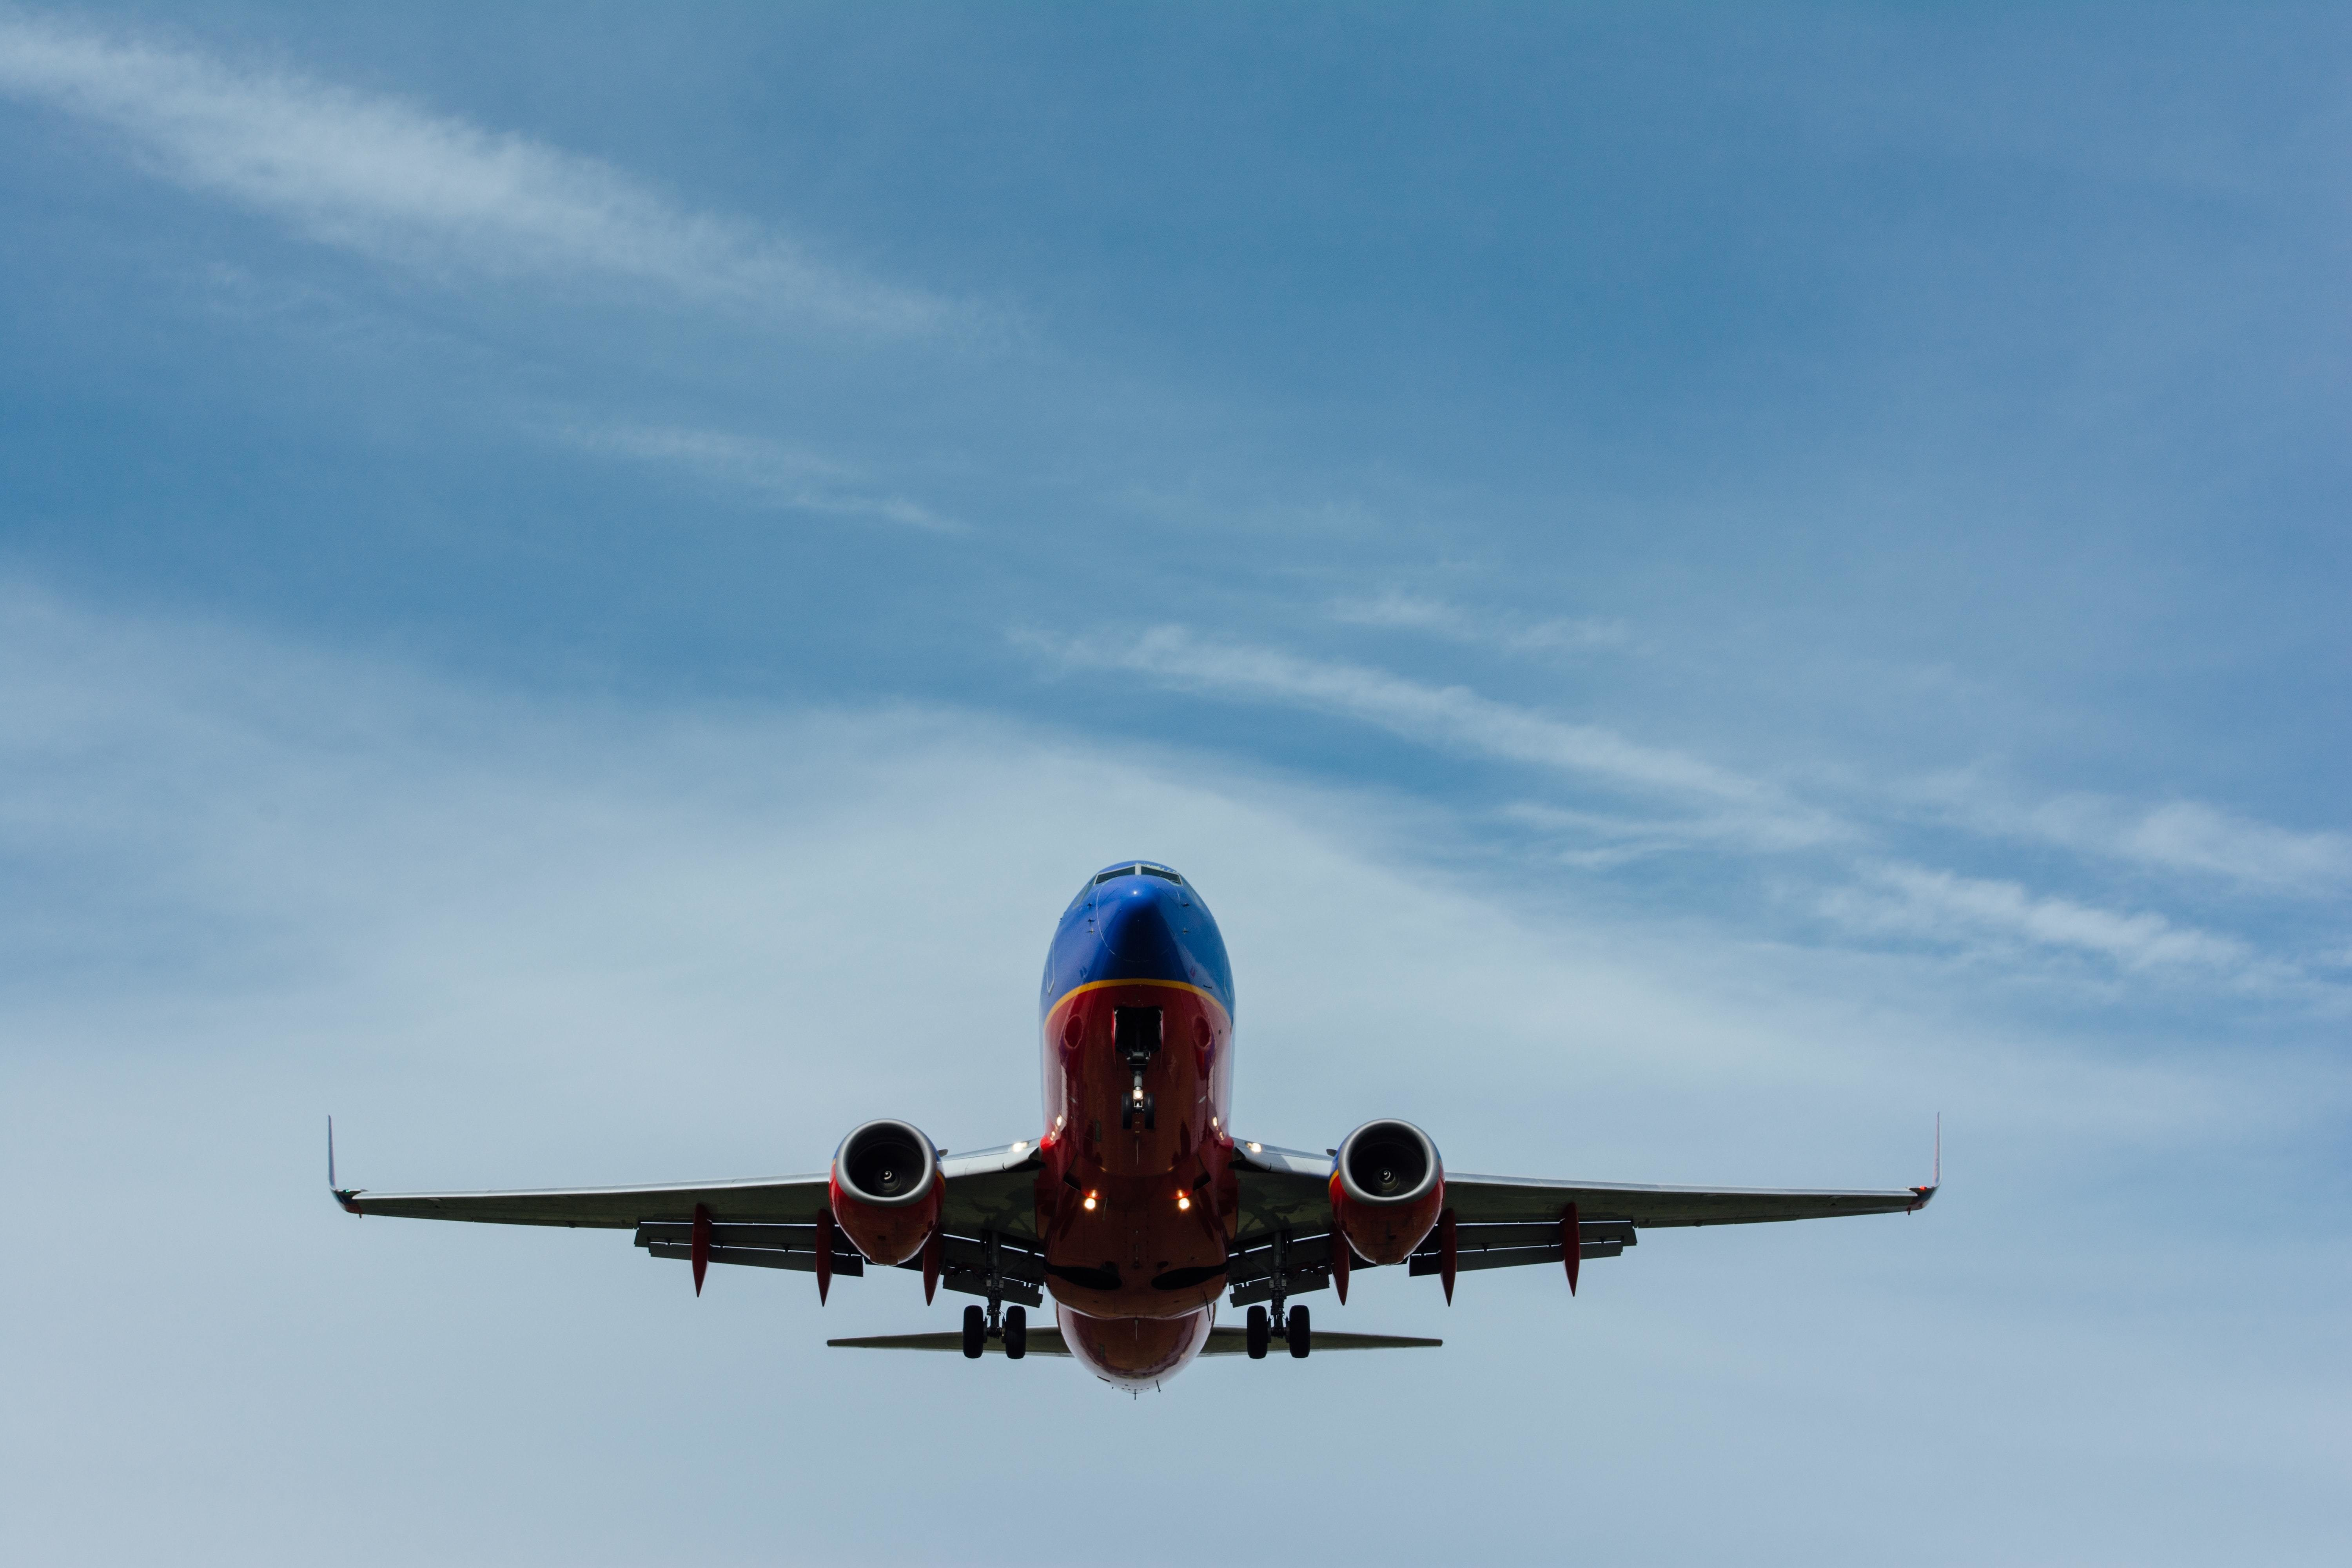 An airplane taking off.